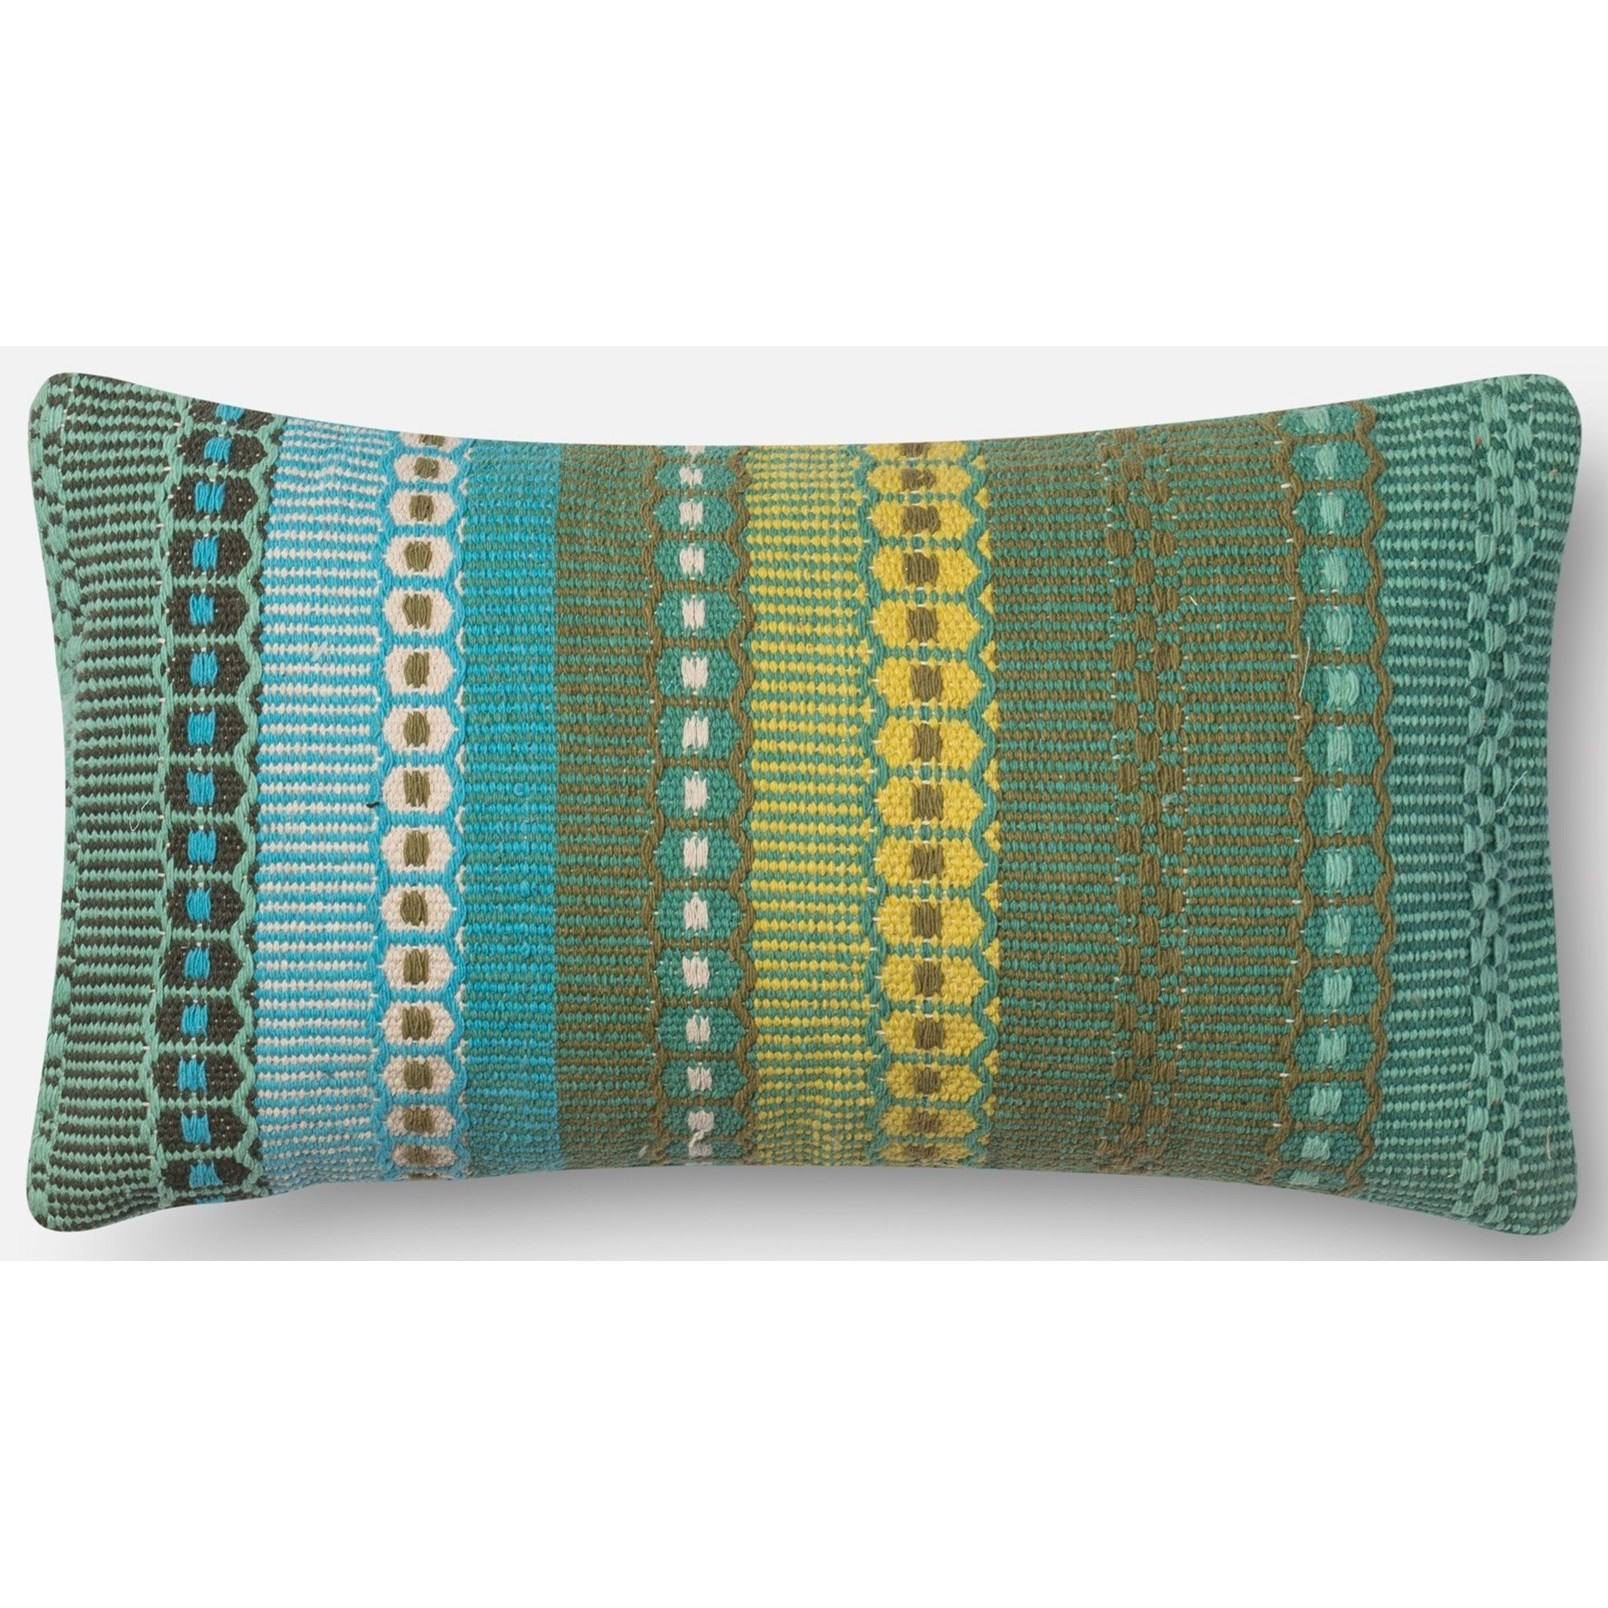 "Accent Pillows 1' X 1'-10"" Cover w/Poly by Loloi Rugs at Sprintz Furniture"